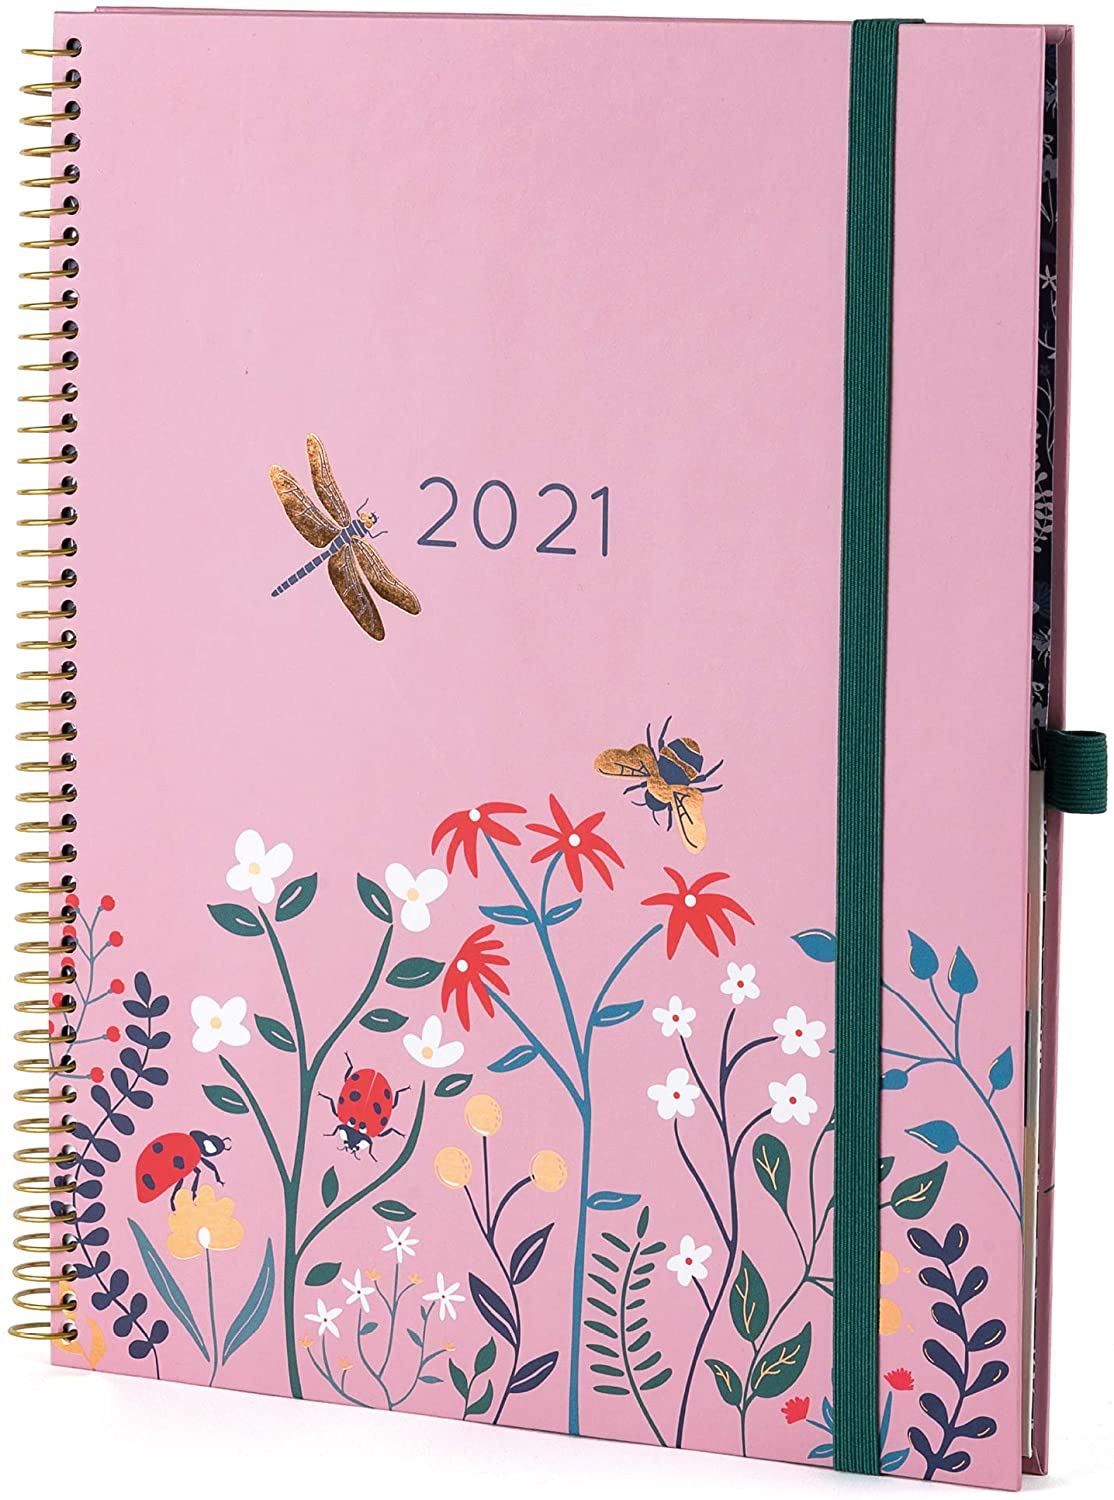 New for 2021! Boxclever Press Planner 2021 8.5 x 11. Weekly Planner with Tabs Runs Jan - Dec'21. Goal Inspired 2021 Planner with dot Grid Note Pages & Planner Stickers. (Strawberry Dawn)